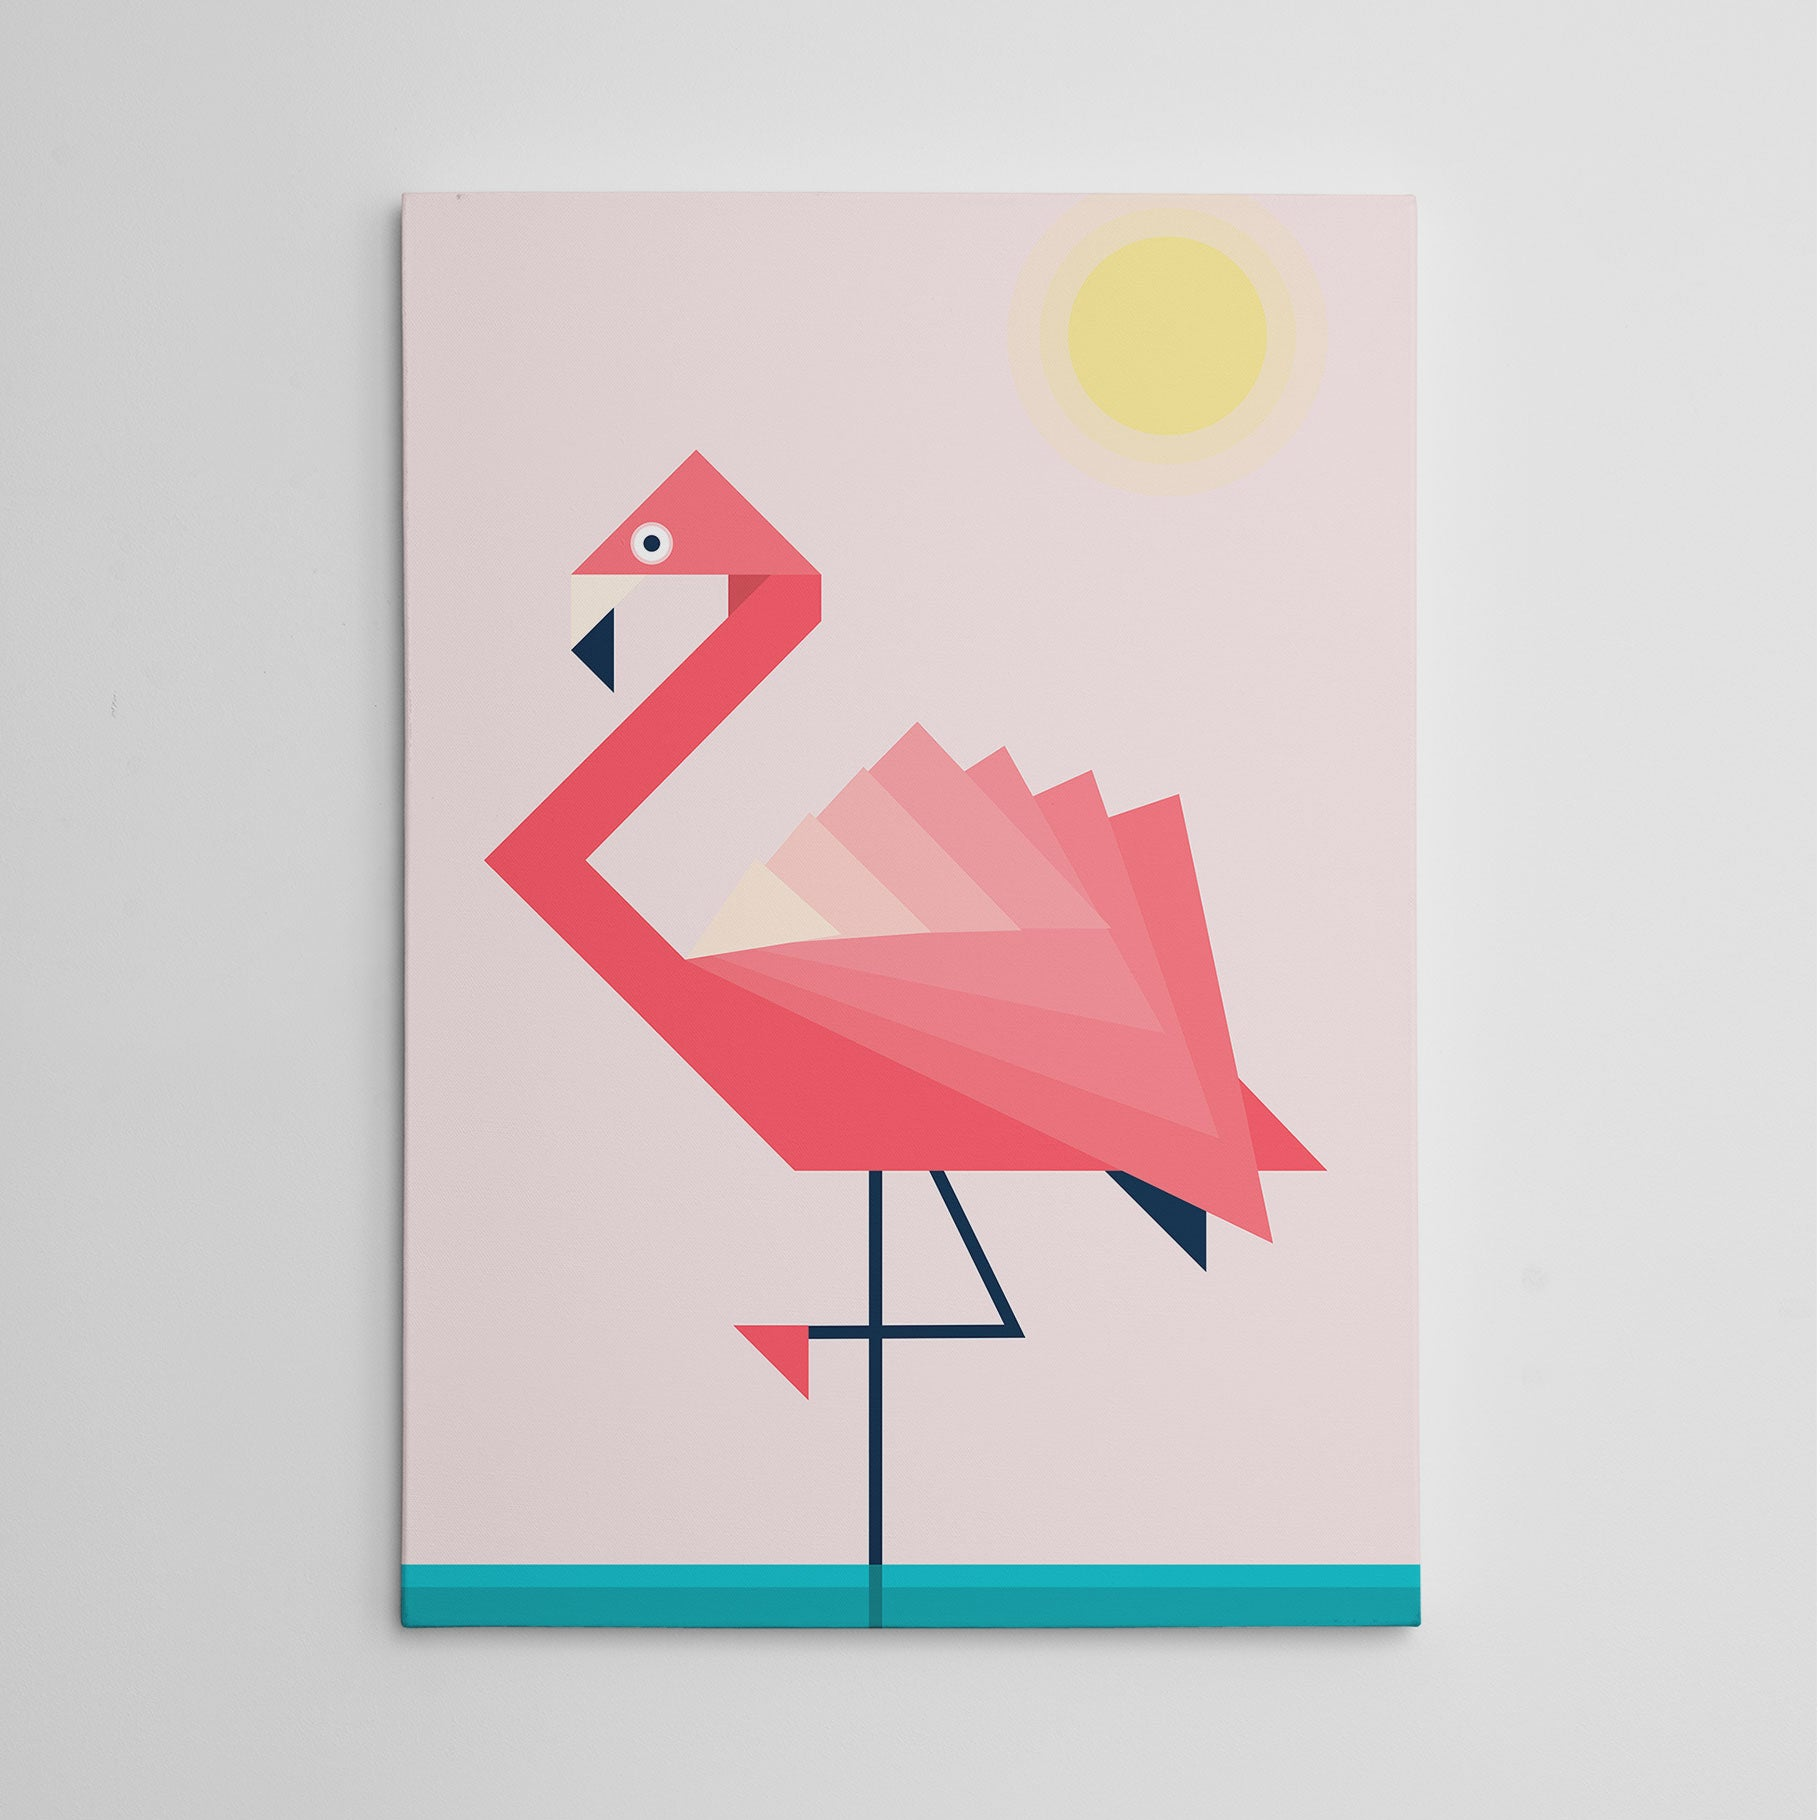 Geometric canvas print with pink flamingo (left), on pink and blue background.